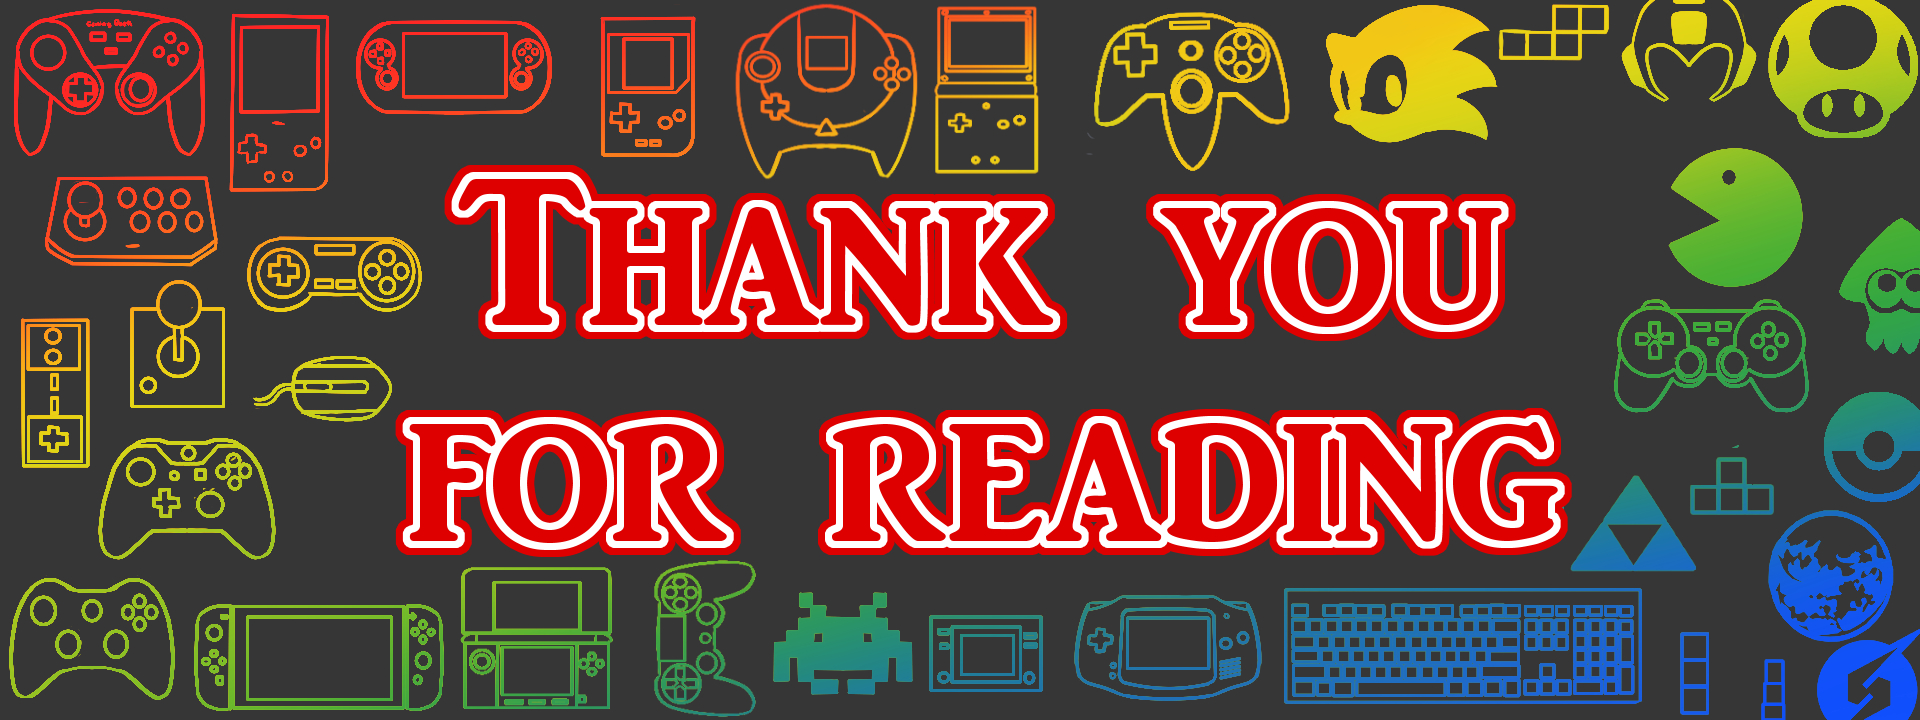 Image result for Thank you all for reading